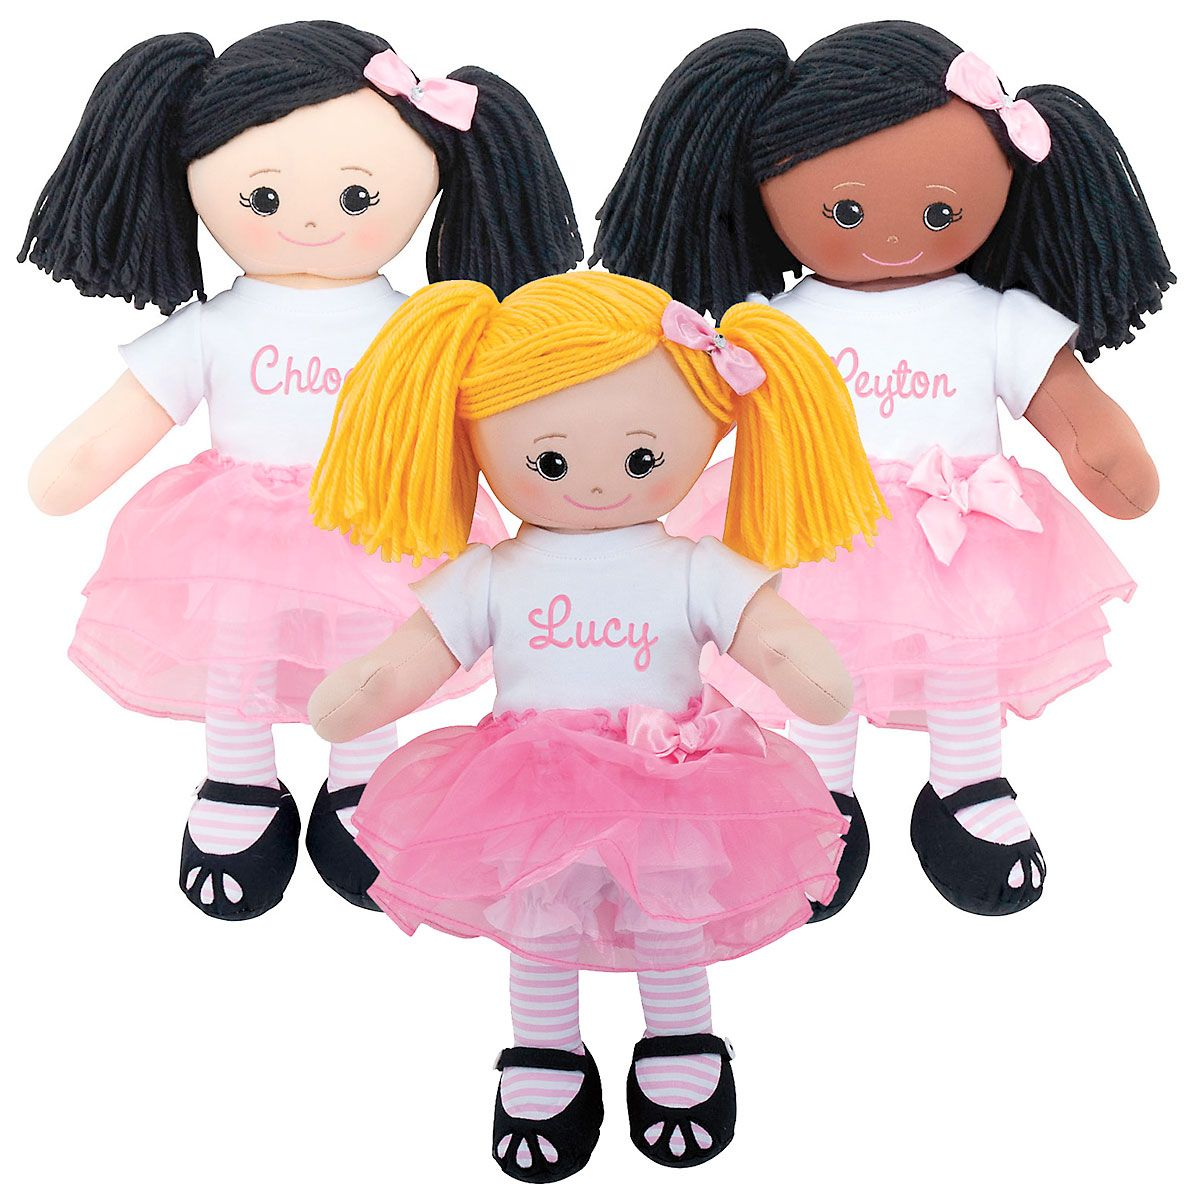 Personalized Ballerina Rag Doll with Tutu